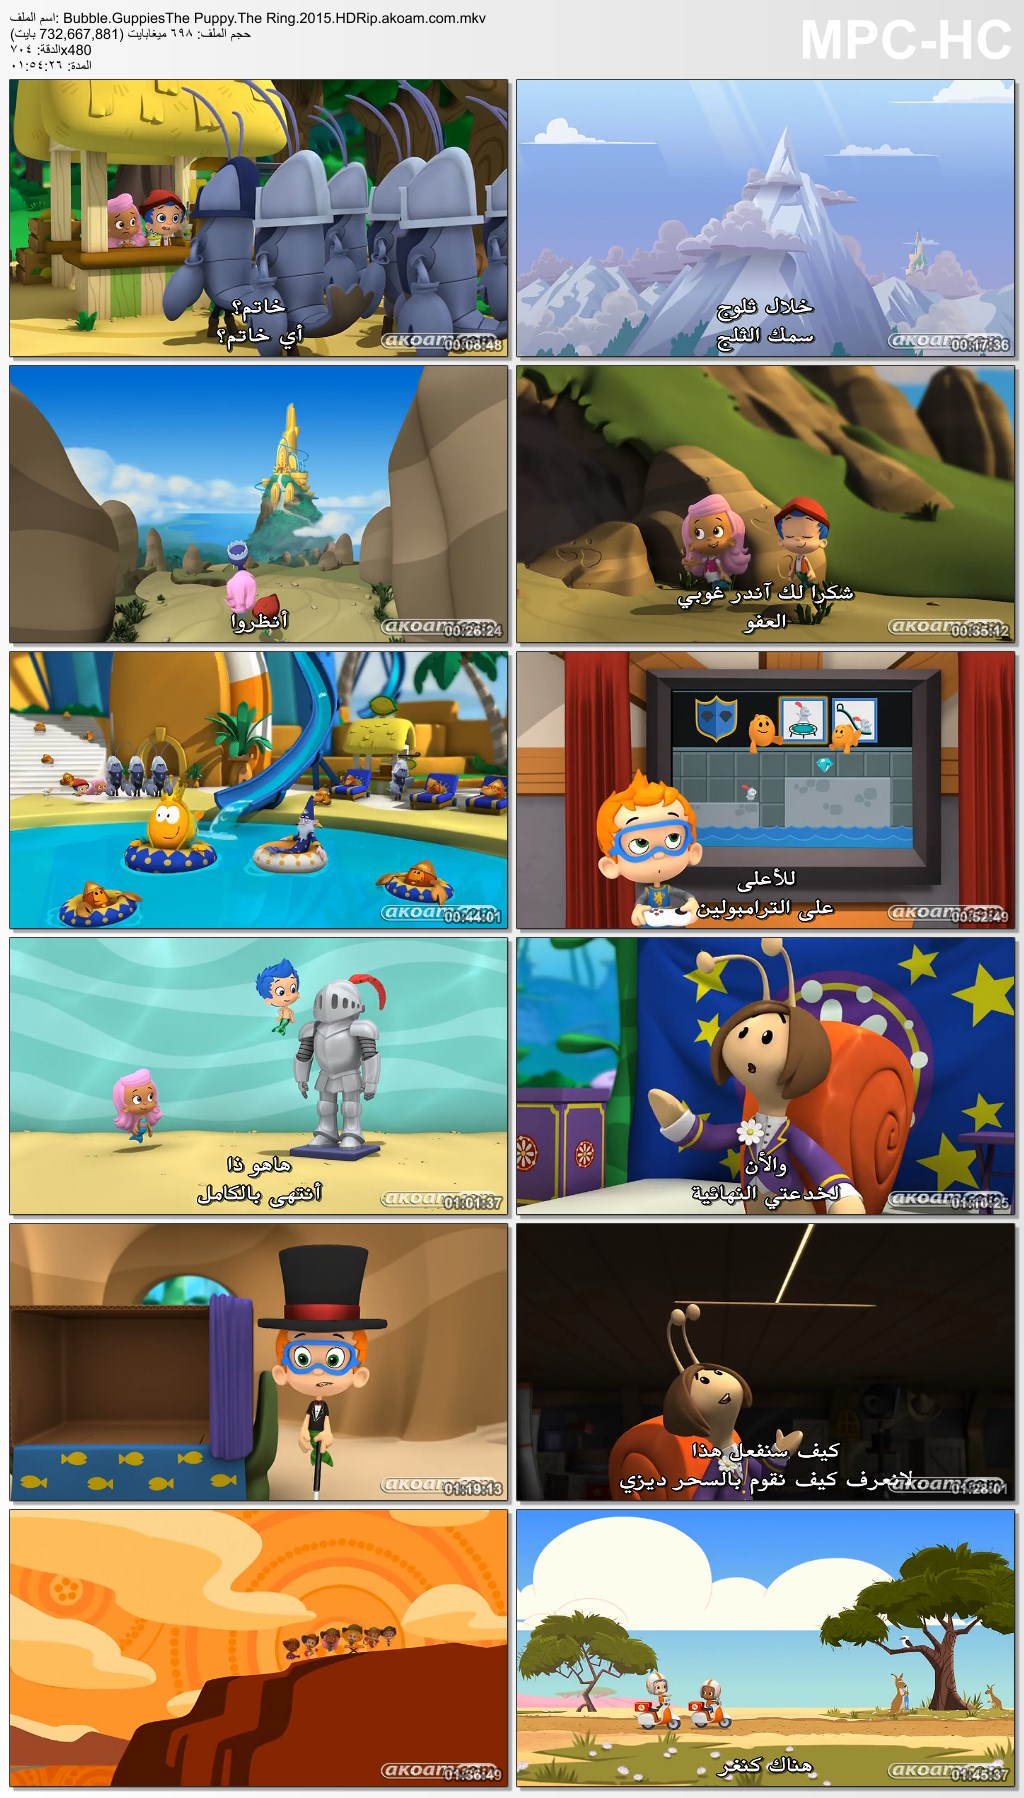 Bubble Guppies The Puppy & The Ring,Bubble Guppies The Puppy & The Ring  2015,Bubble Guppies The Puppy,The Ring,The Ring 205,الانمي,الانيميشن,المغامرات,عائلي